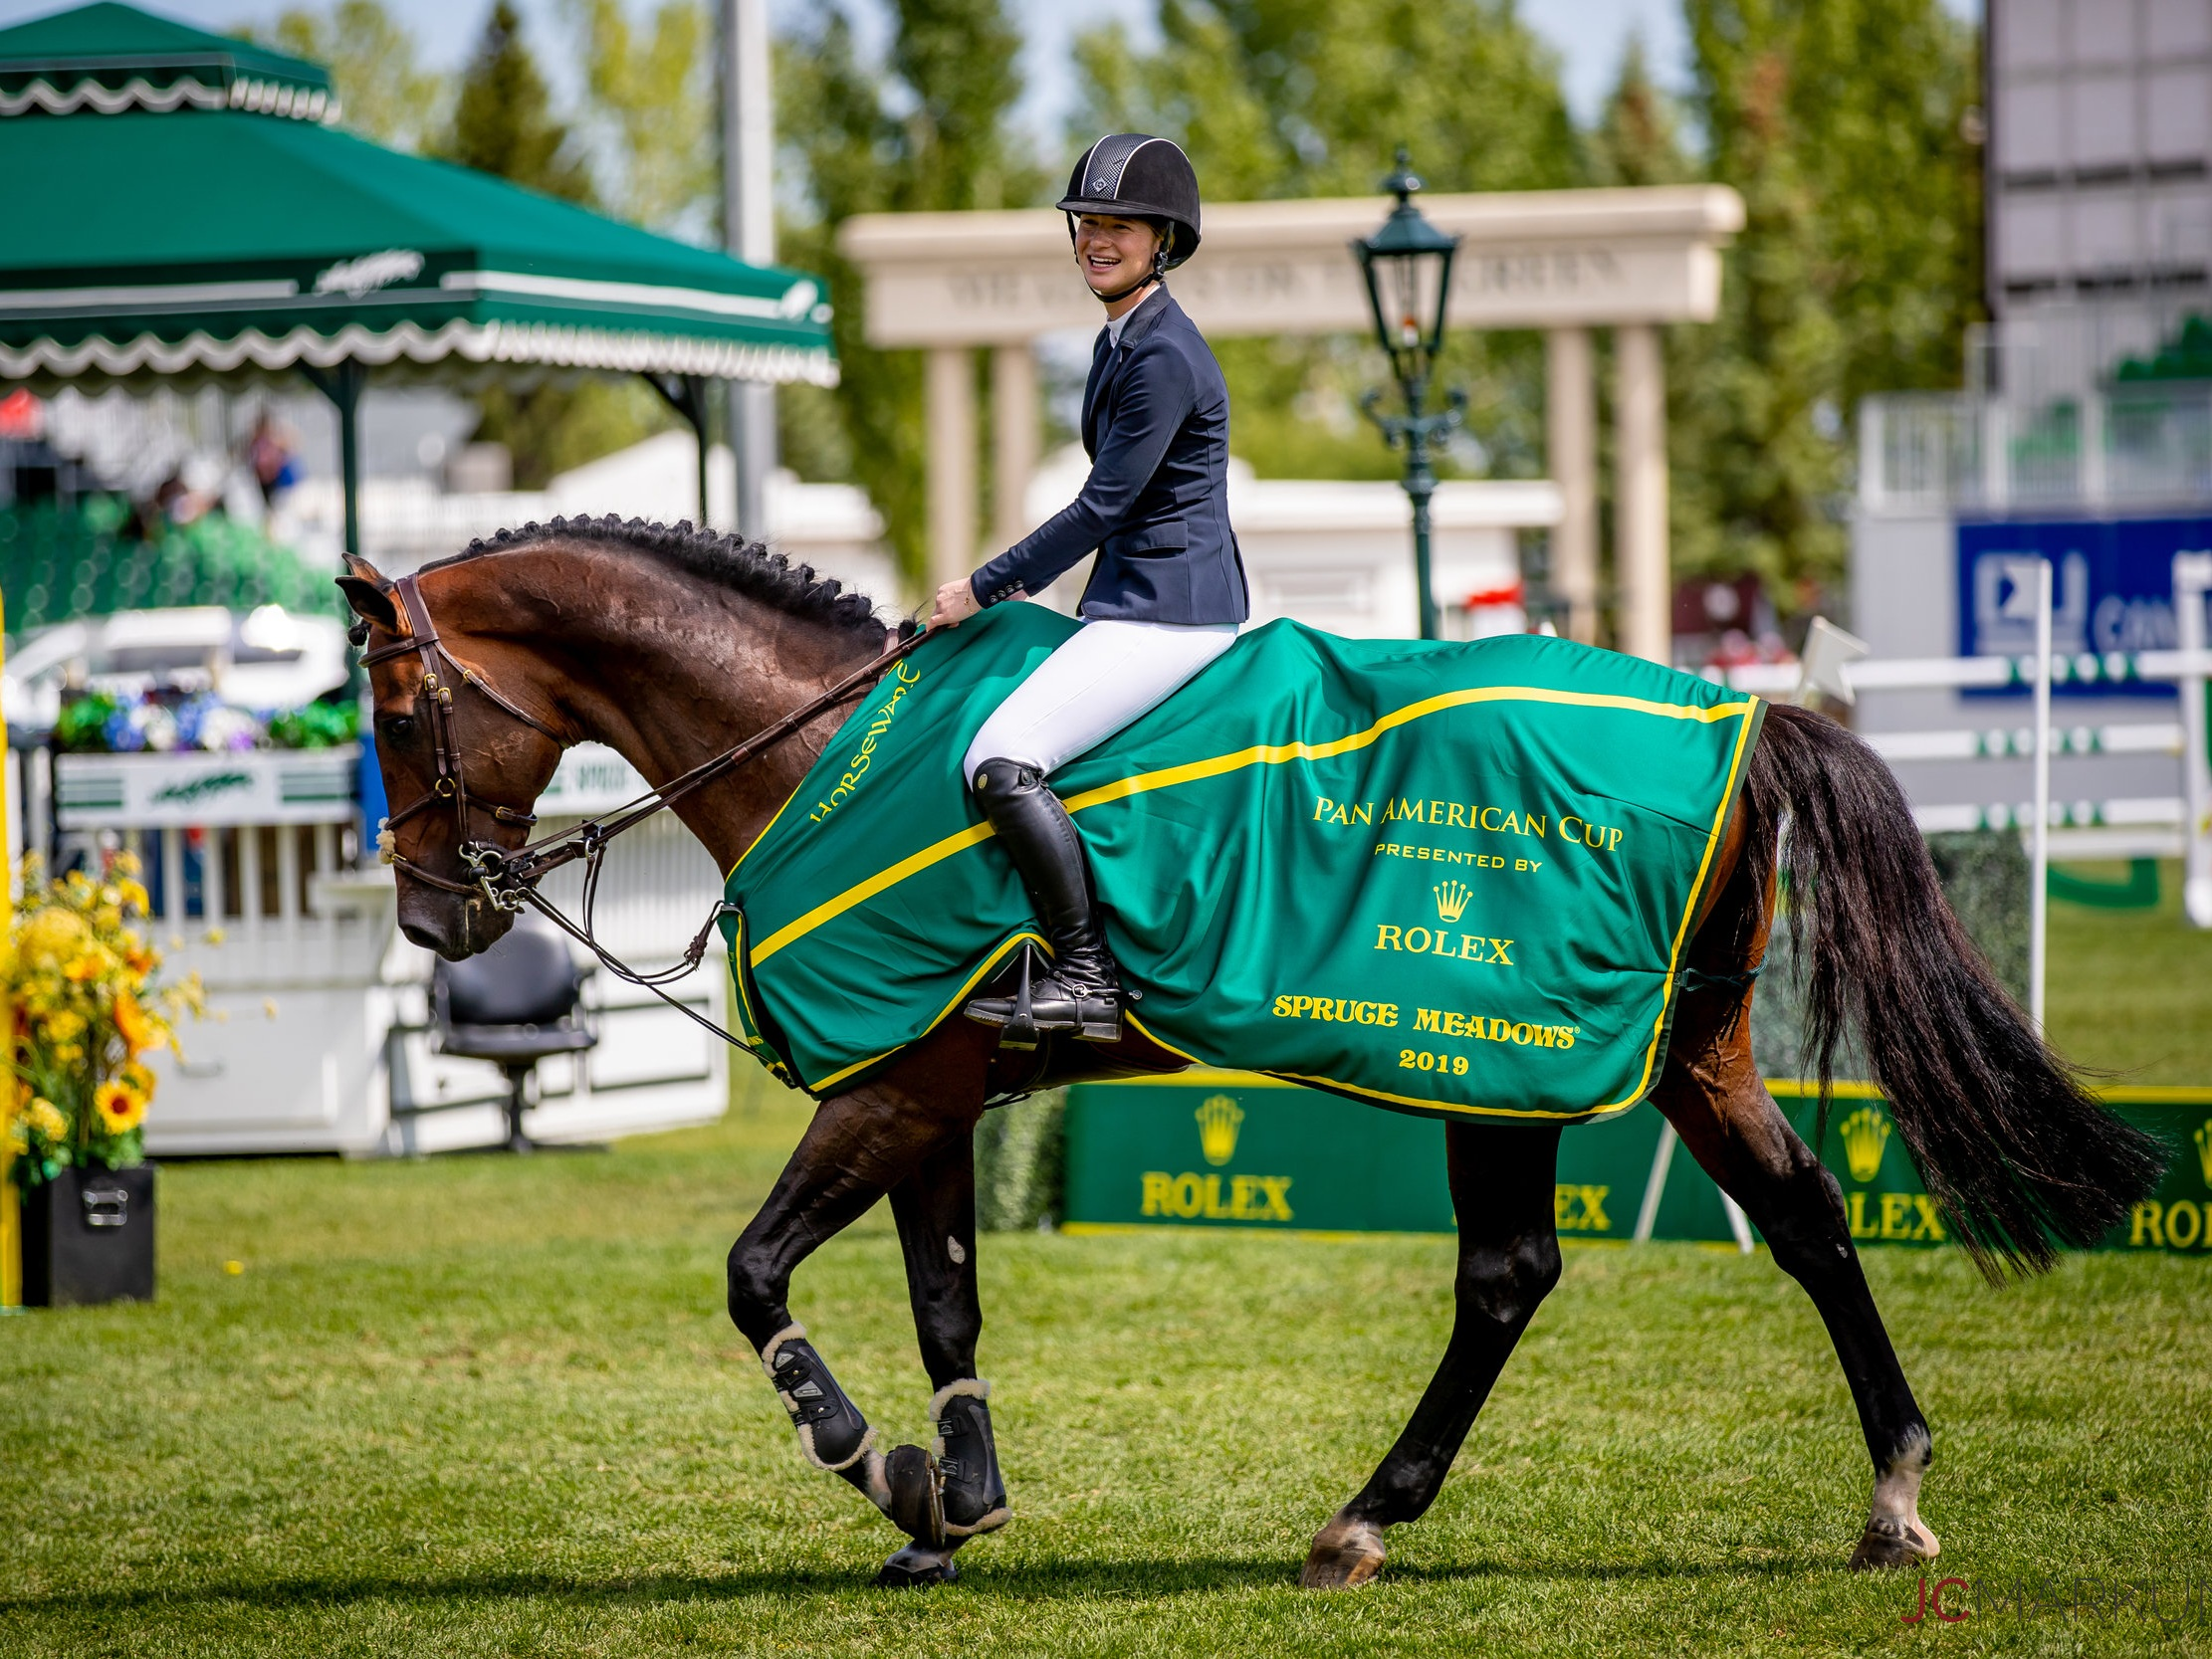 Jenn Gates and Capital Colnardo at Spruce Meadows CSI 5* by Rolex 2019. Photo by JC Markun.